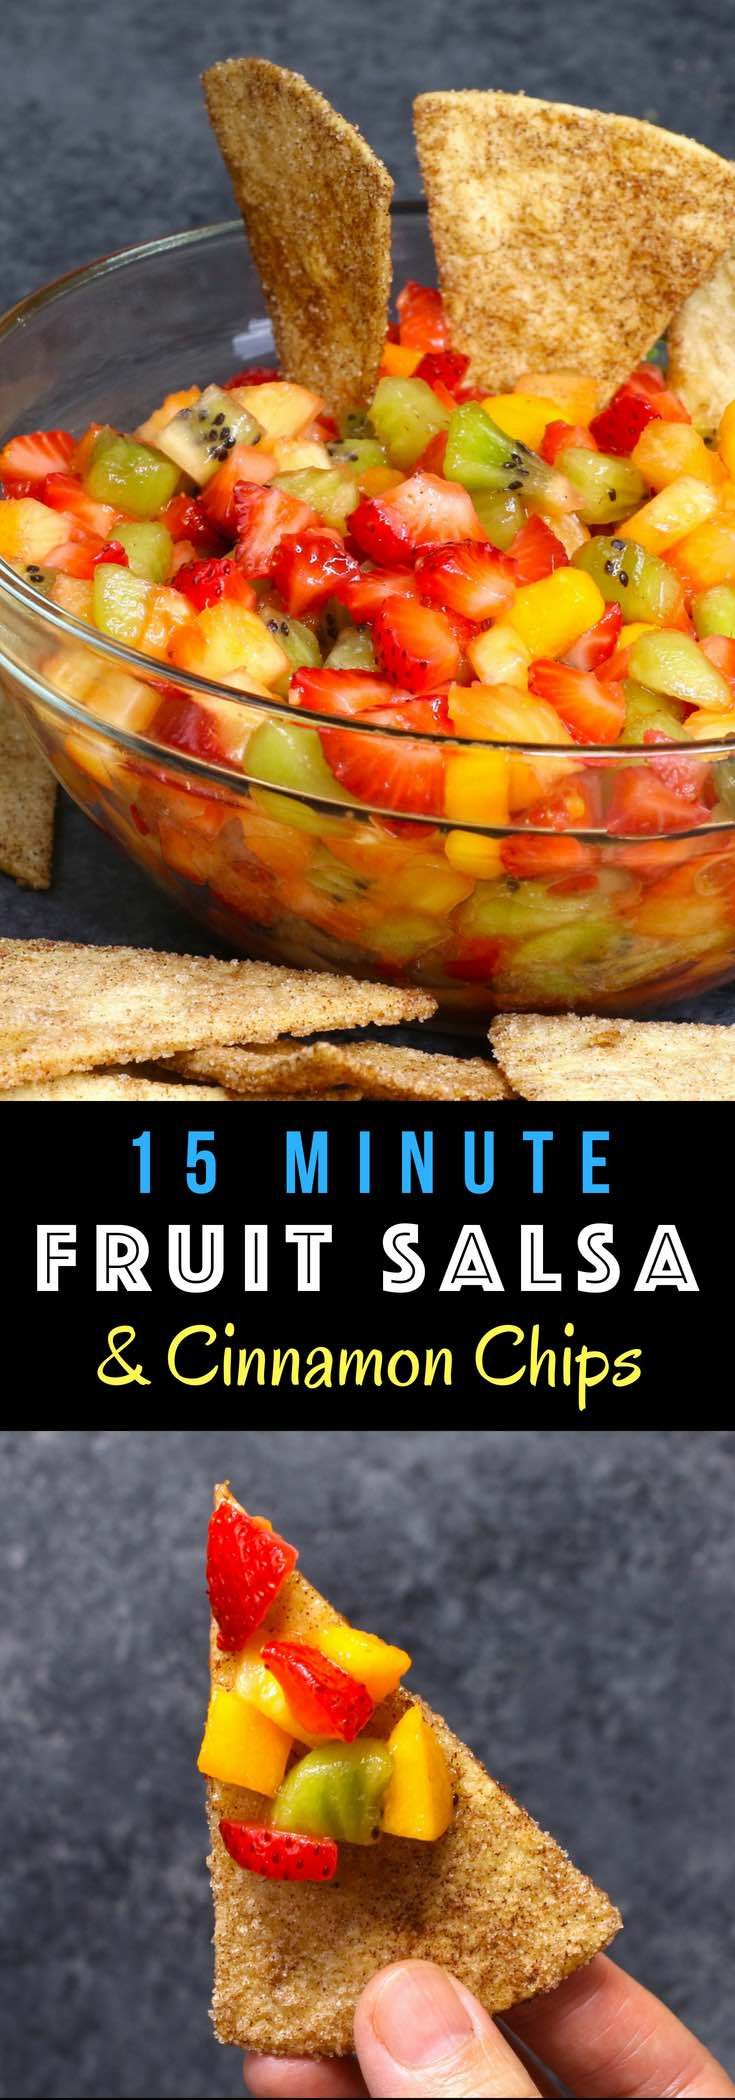 Quick and easy Fruit Salsa with Cinnamon Chips – delicious fruit salsa with crispy and sweet cinnamon chips. It comes together in no time. It's a great way to start the day, enjoy the day, or finish the day with this fresh Fruit Salsa! #fruitSalsa